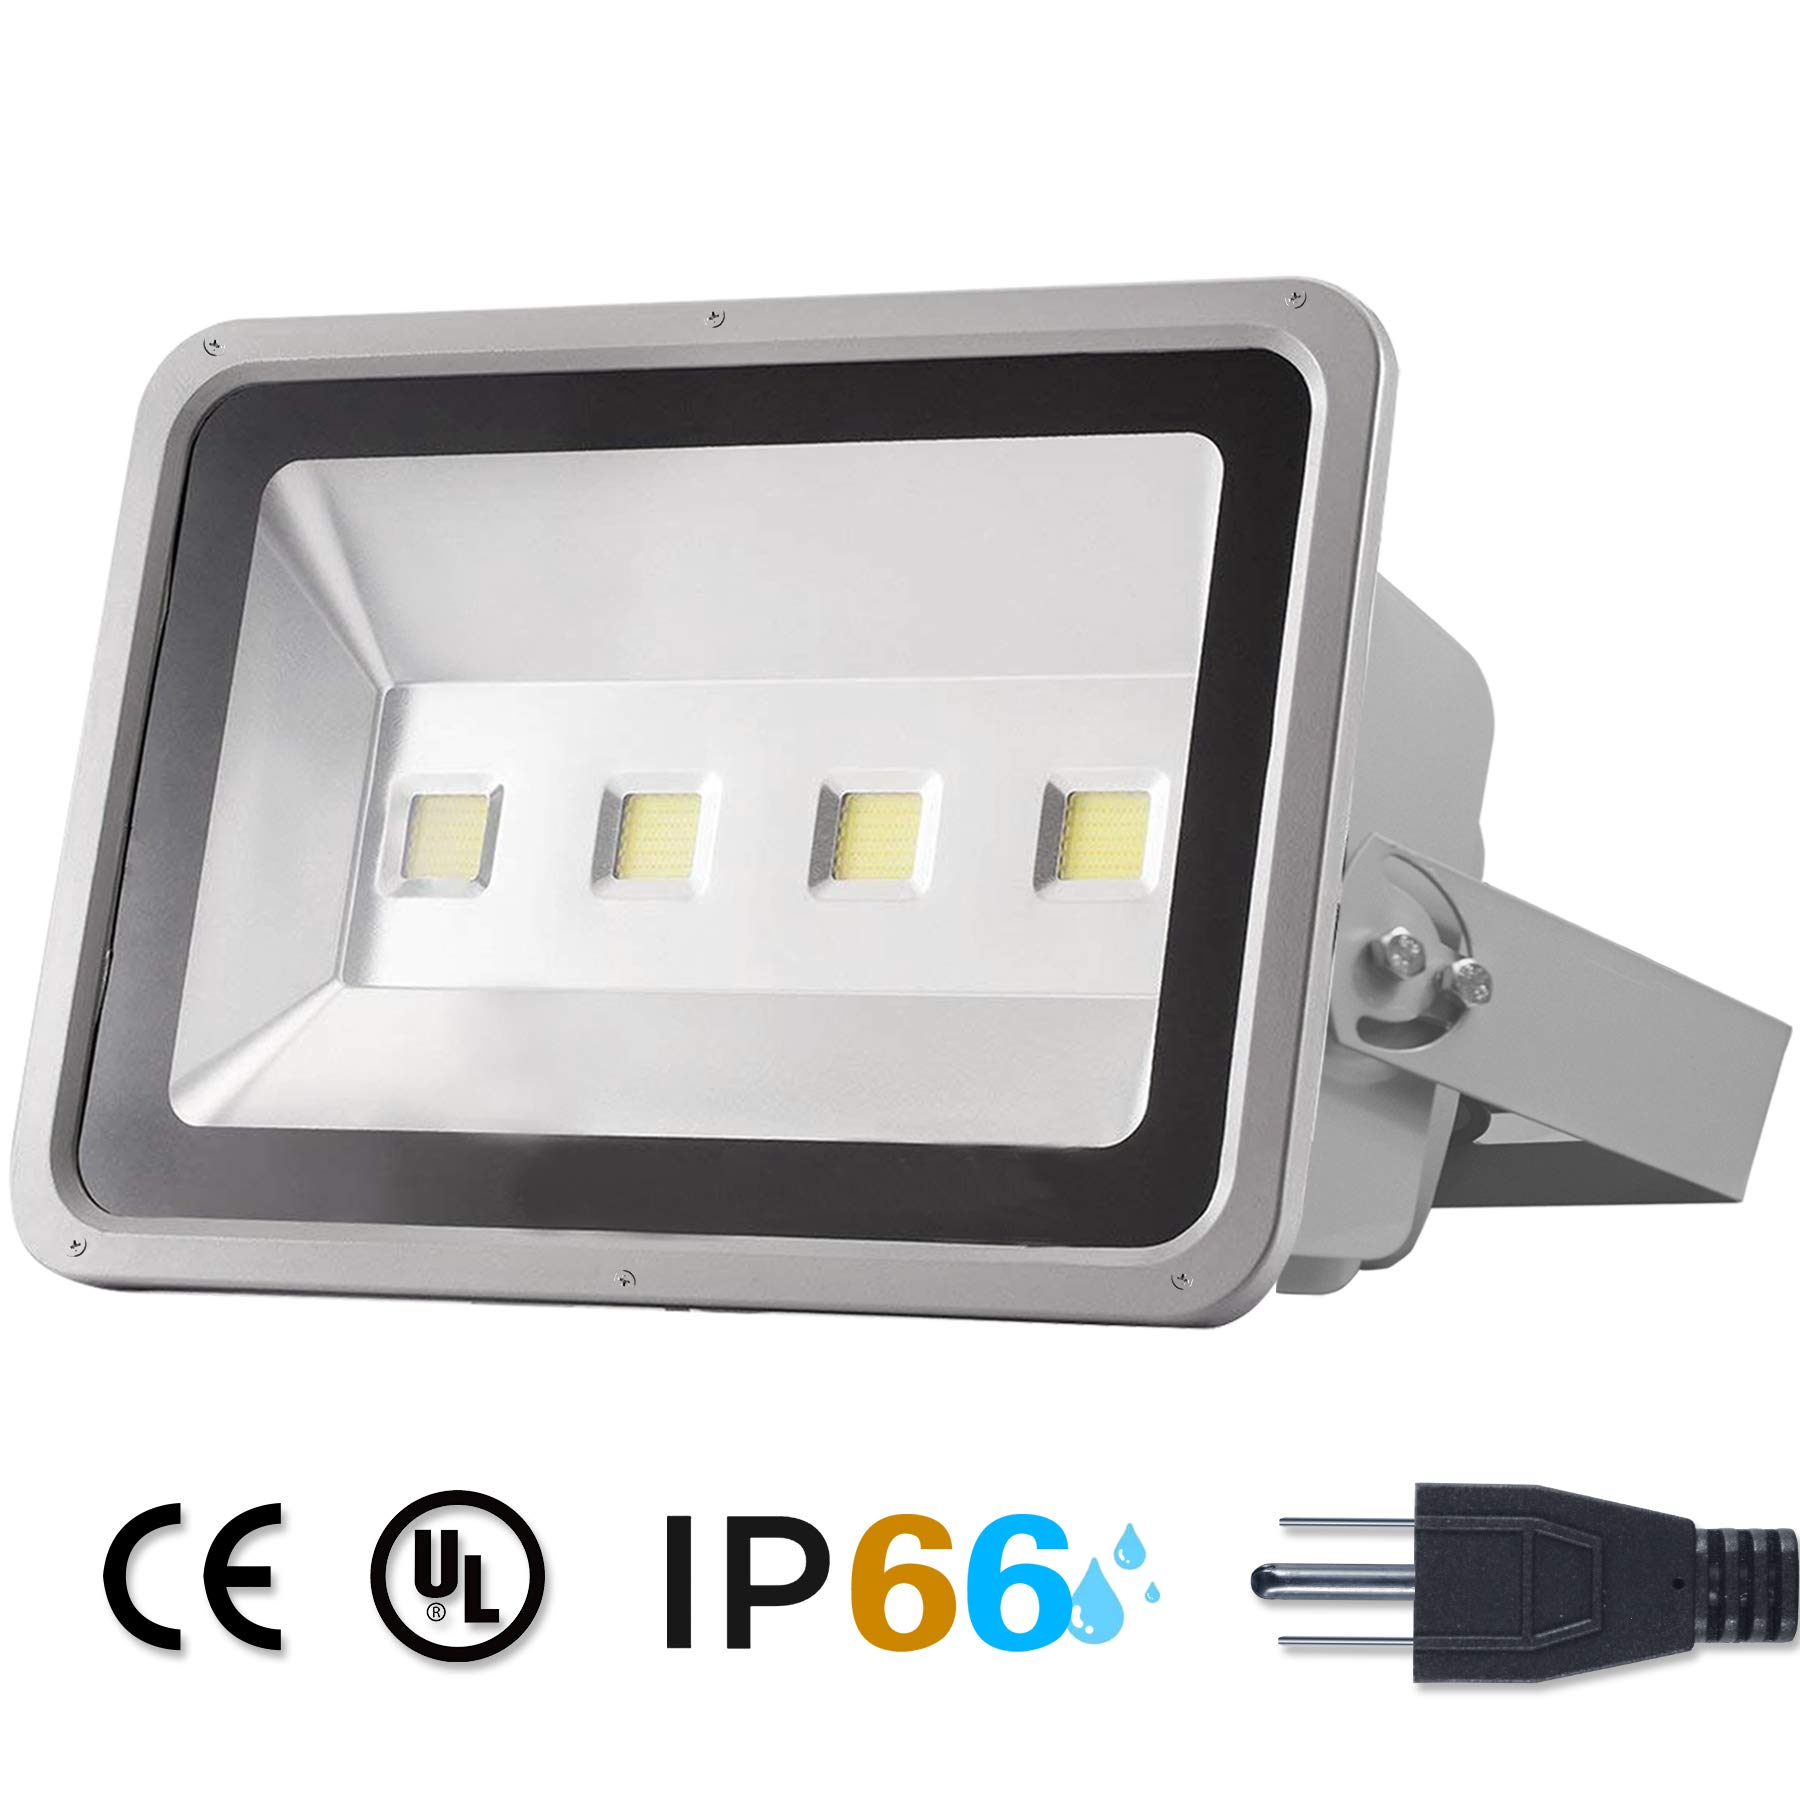 Hikari LED Flood Light 200W Outdoor Waterproof -Super Bright 6000K White floodlight AC85-265V IP66 All-Weather 100% Aluminum Shell 50,000 Hours Life 20,000 lm 2 Years Warranty